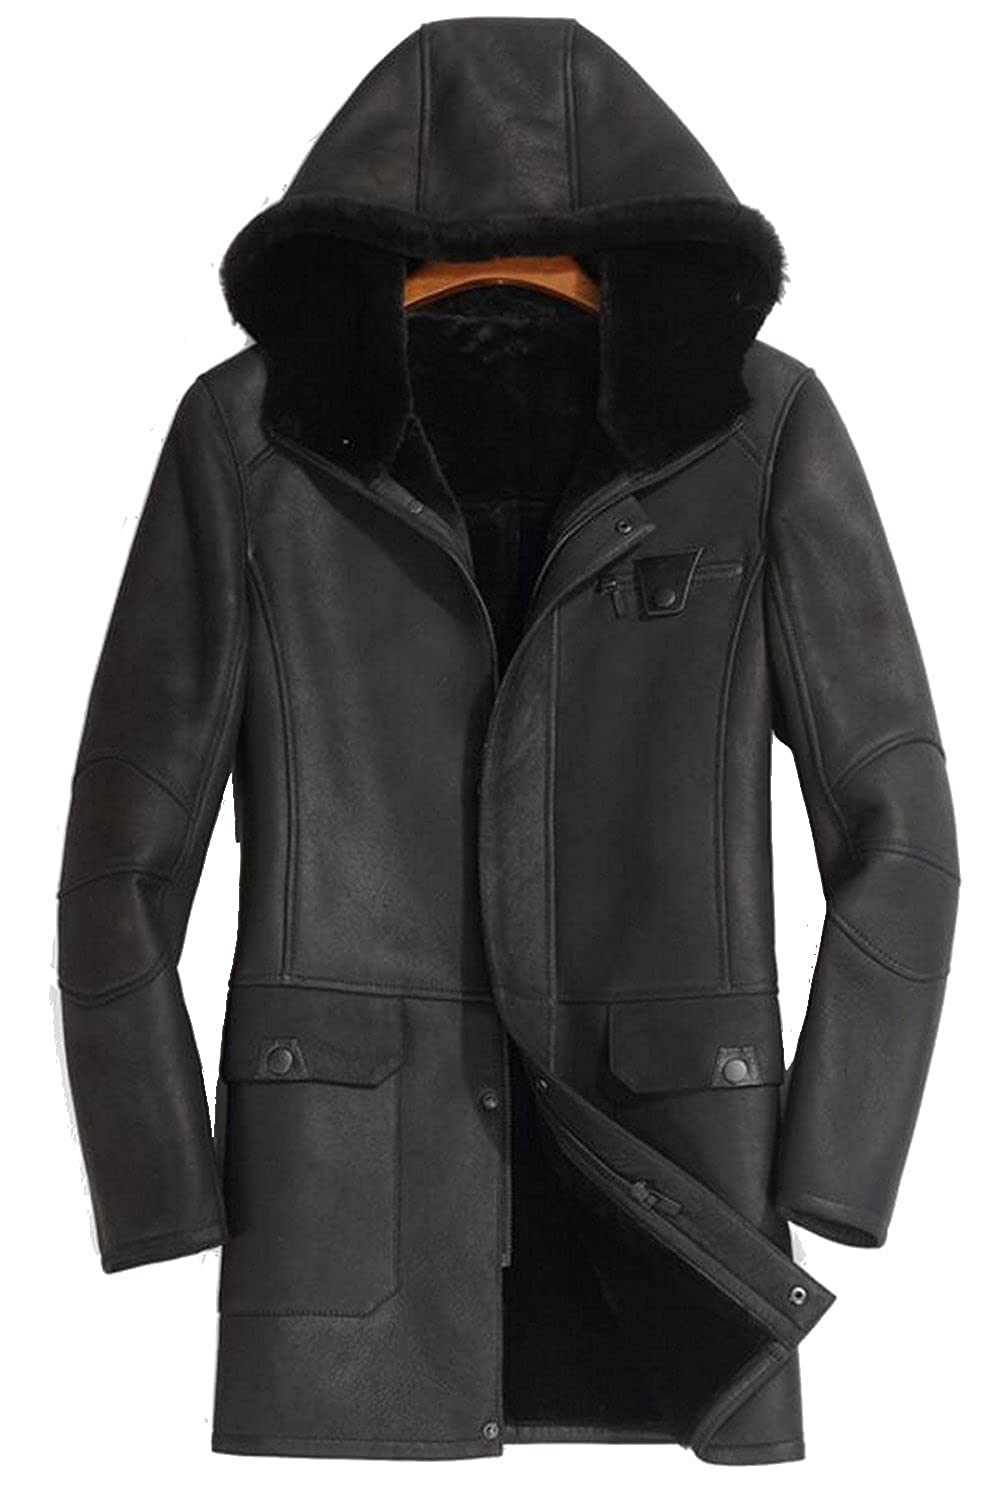 JIAX Mens Winter Thick Coat PU Leather Faux Suede Jacket Lamb Wool Lining Parke